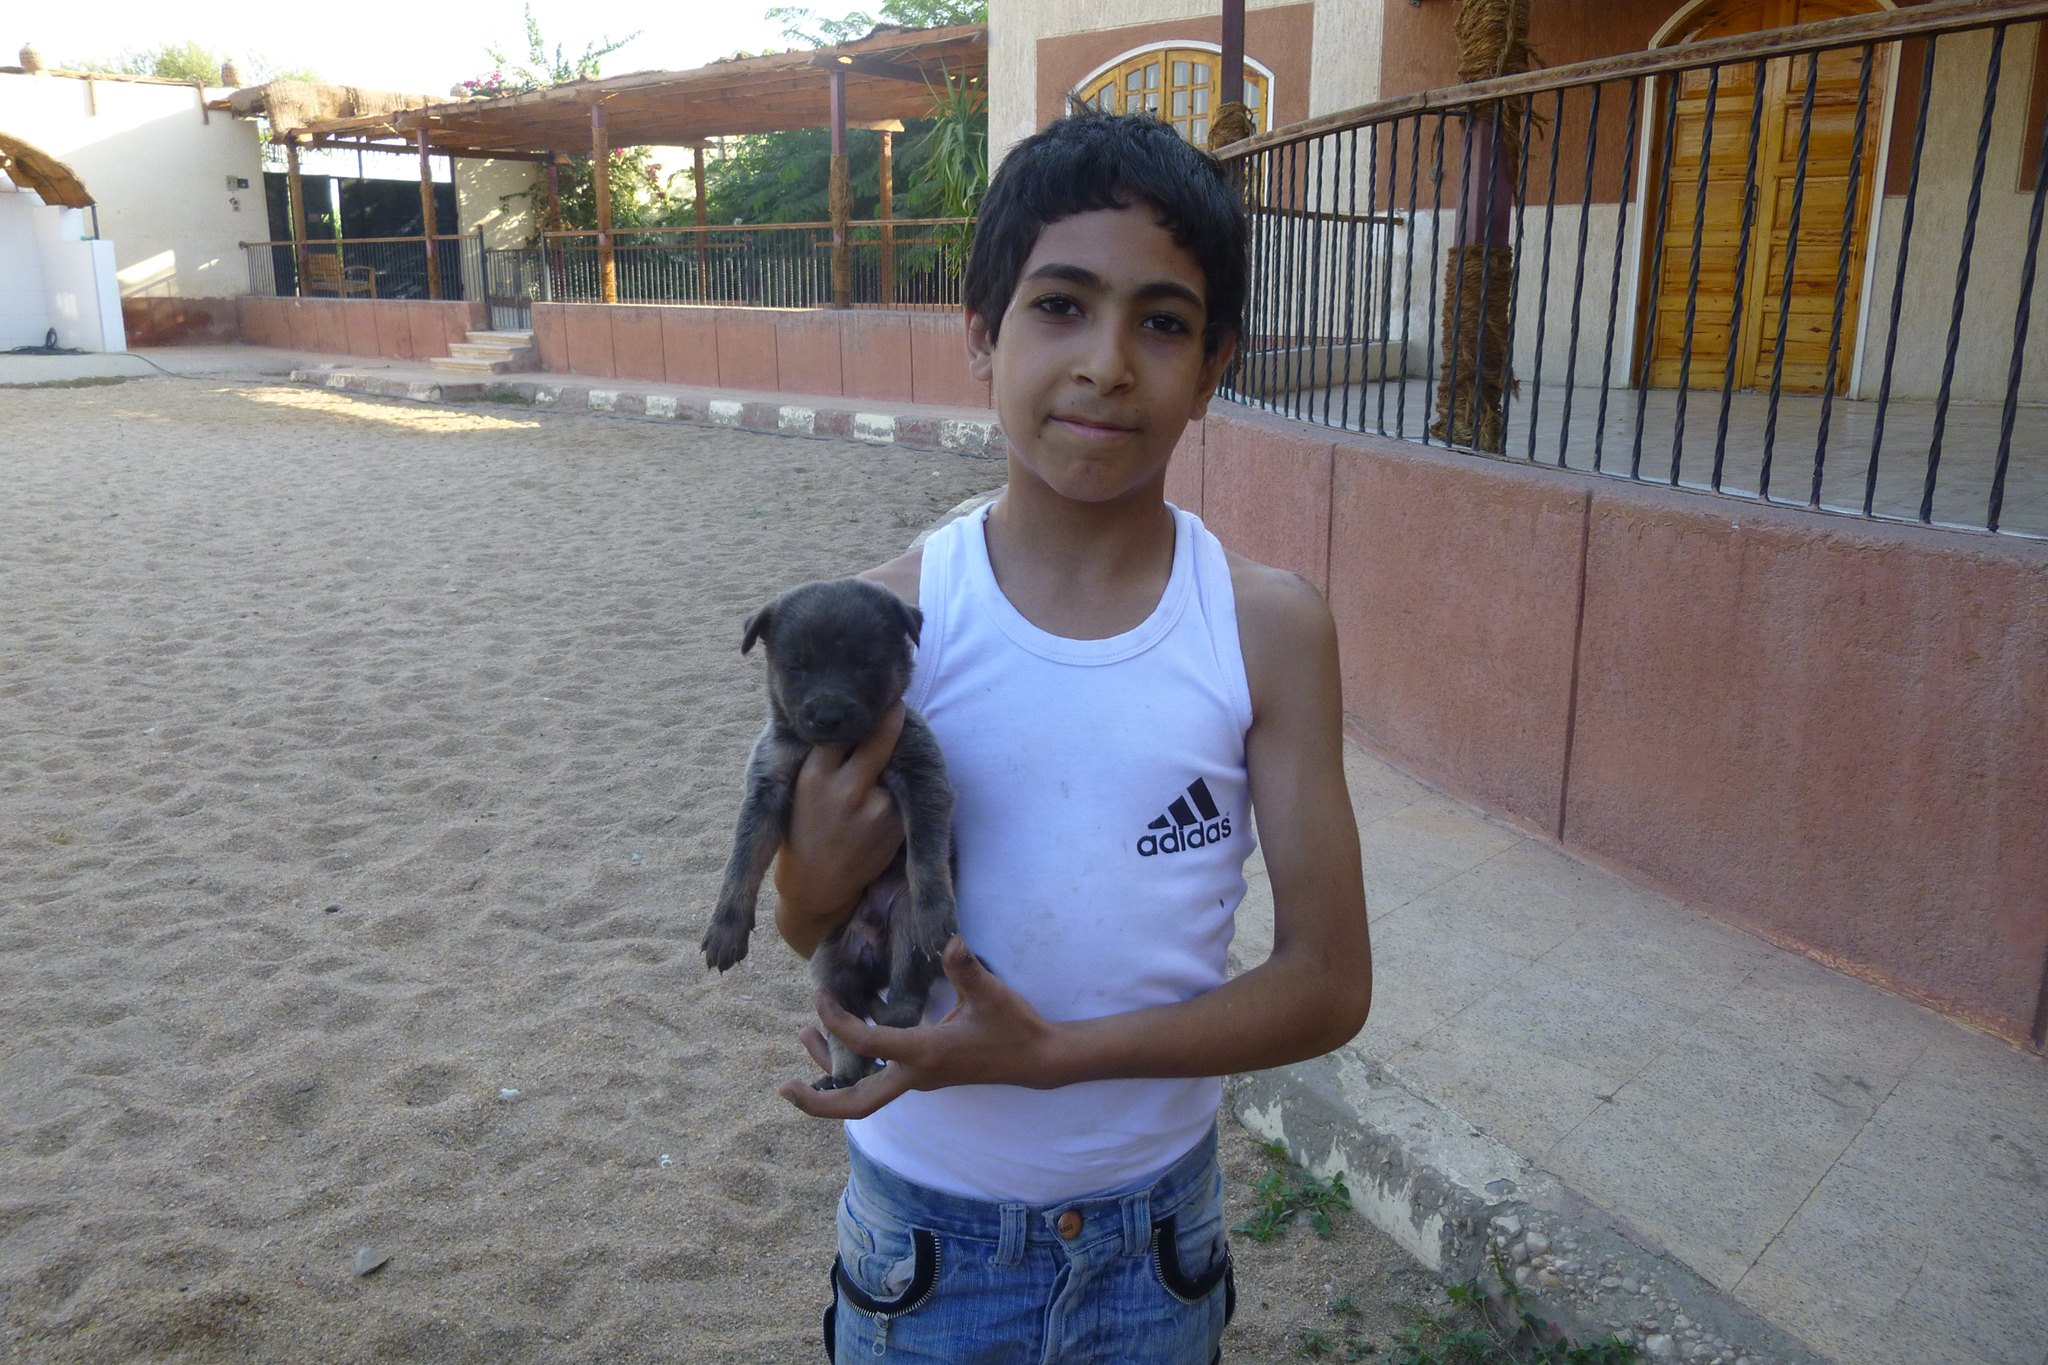 This is Mahmoud. Mahmoud was cycling with his cousins when he heard cries coming from disposed rubbish. He found this little puppy and brought him straight to ACE for a health check. Mahmoud named the puppy 'Rex' and now takes care of him with the advice of ACE.